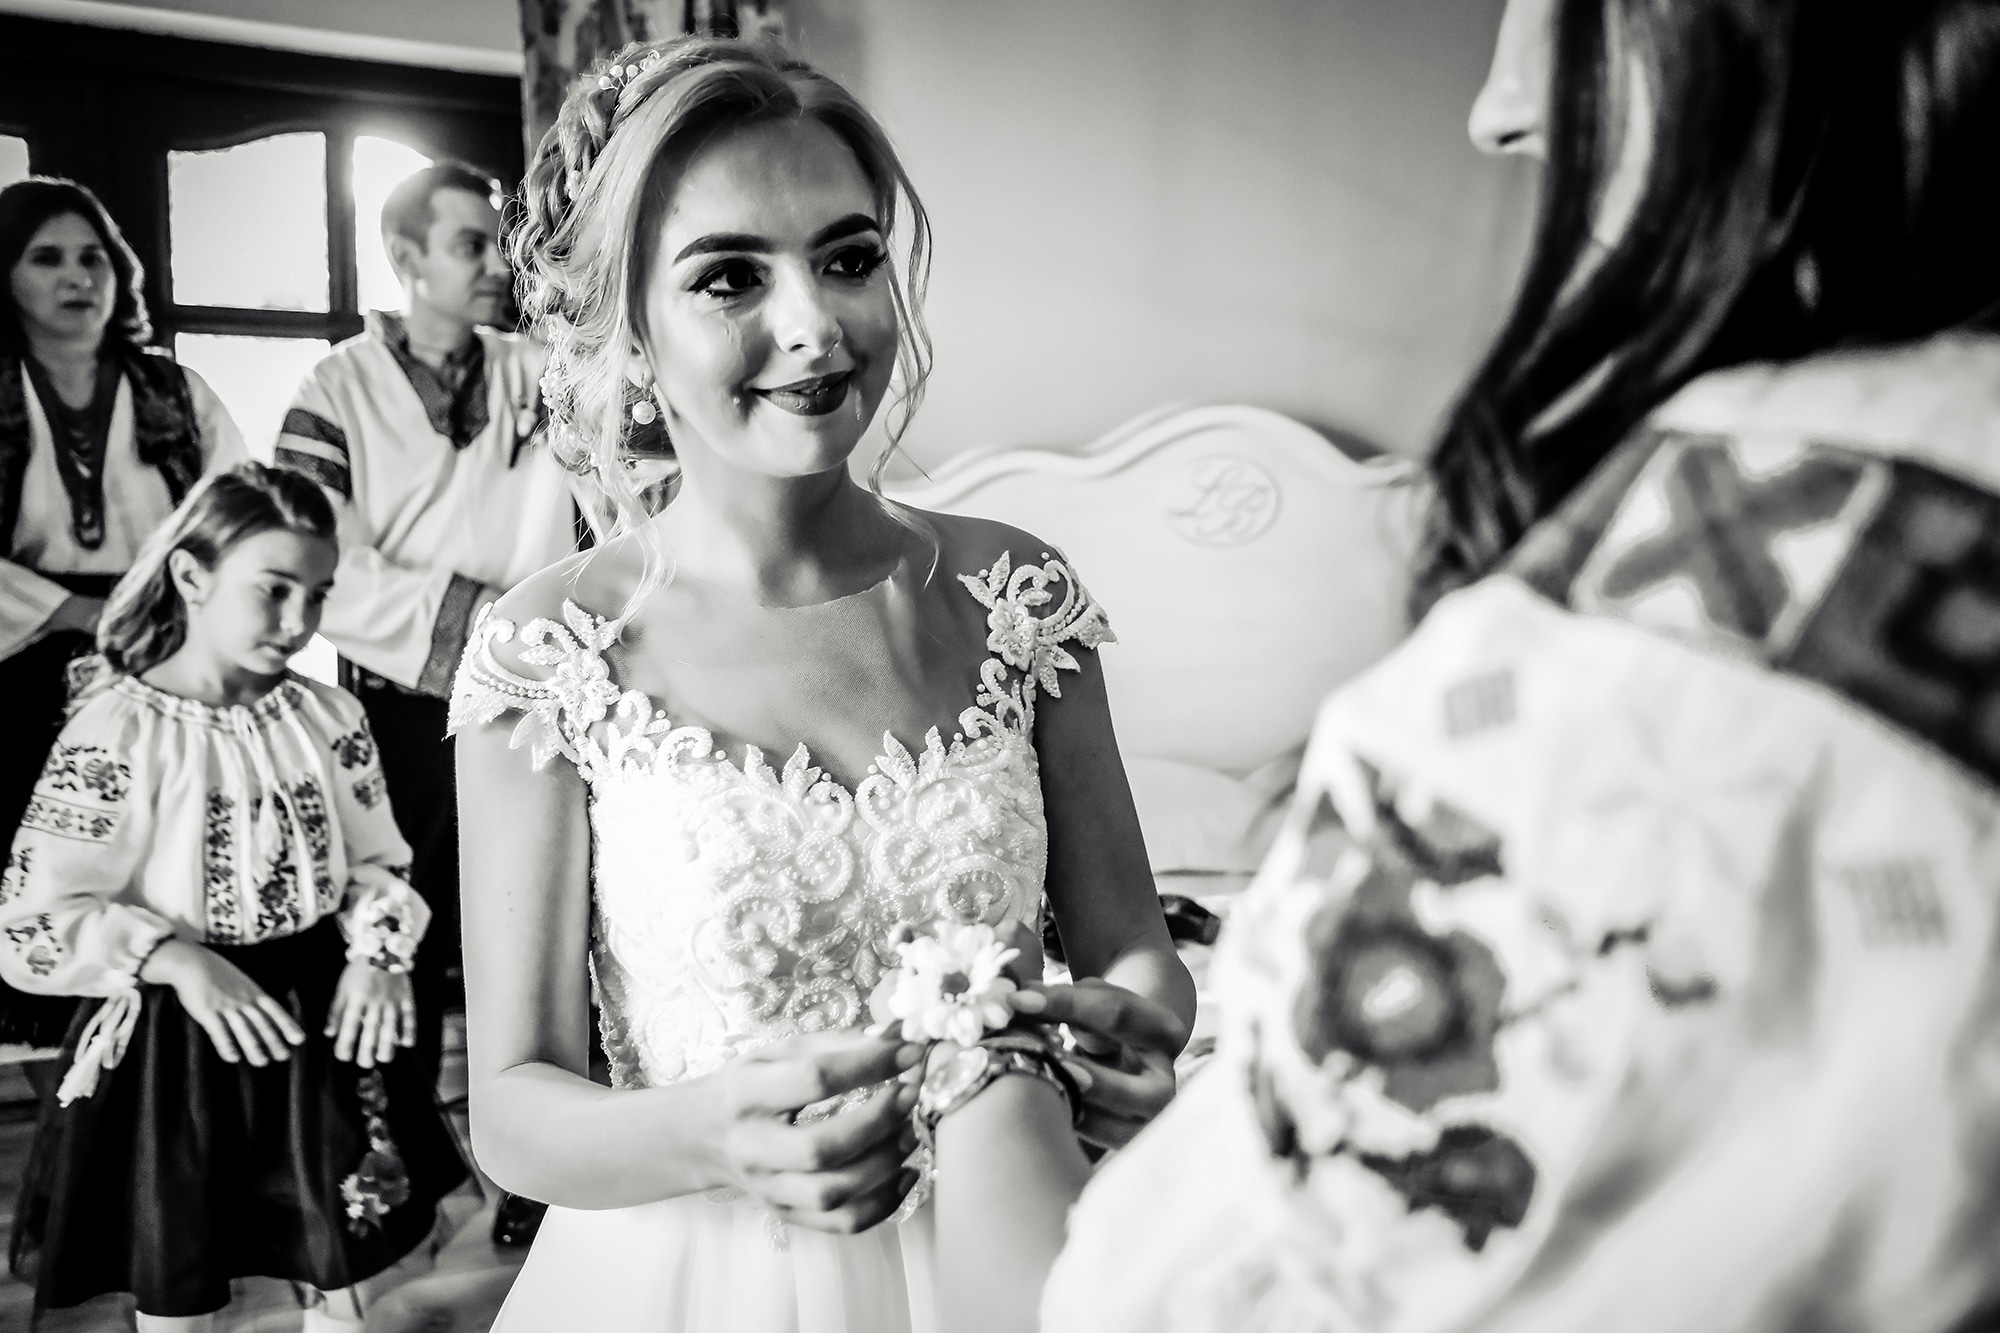 fotograf_nunta_suceava_romania_wedding_photographer_europe-(3)